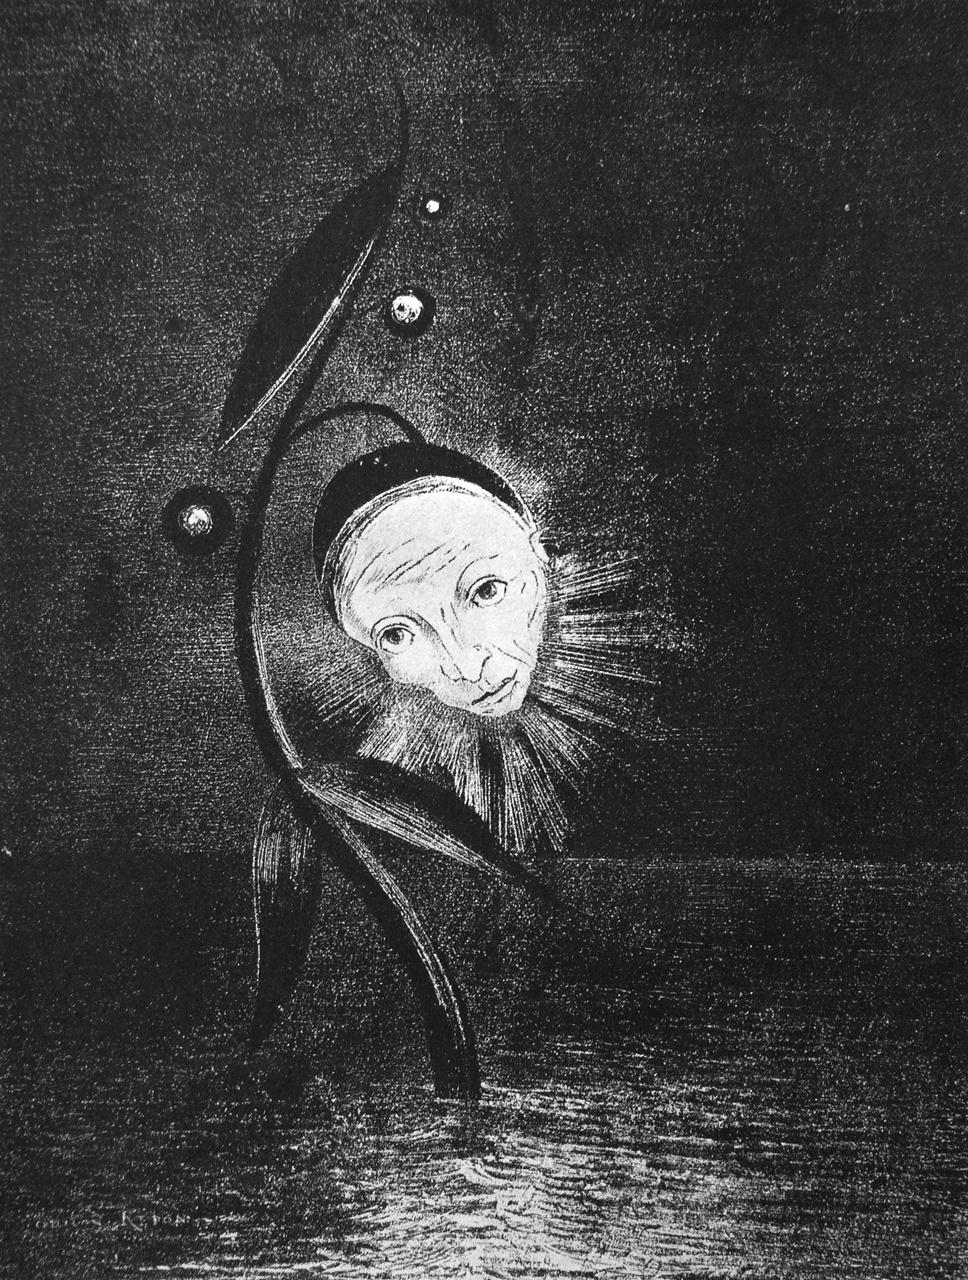 The Marsh Flower, A Sad Human Head (1885) by Odilon Redon. As reproduced in Art in Time